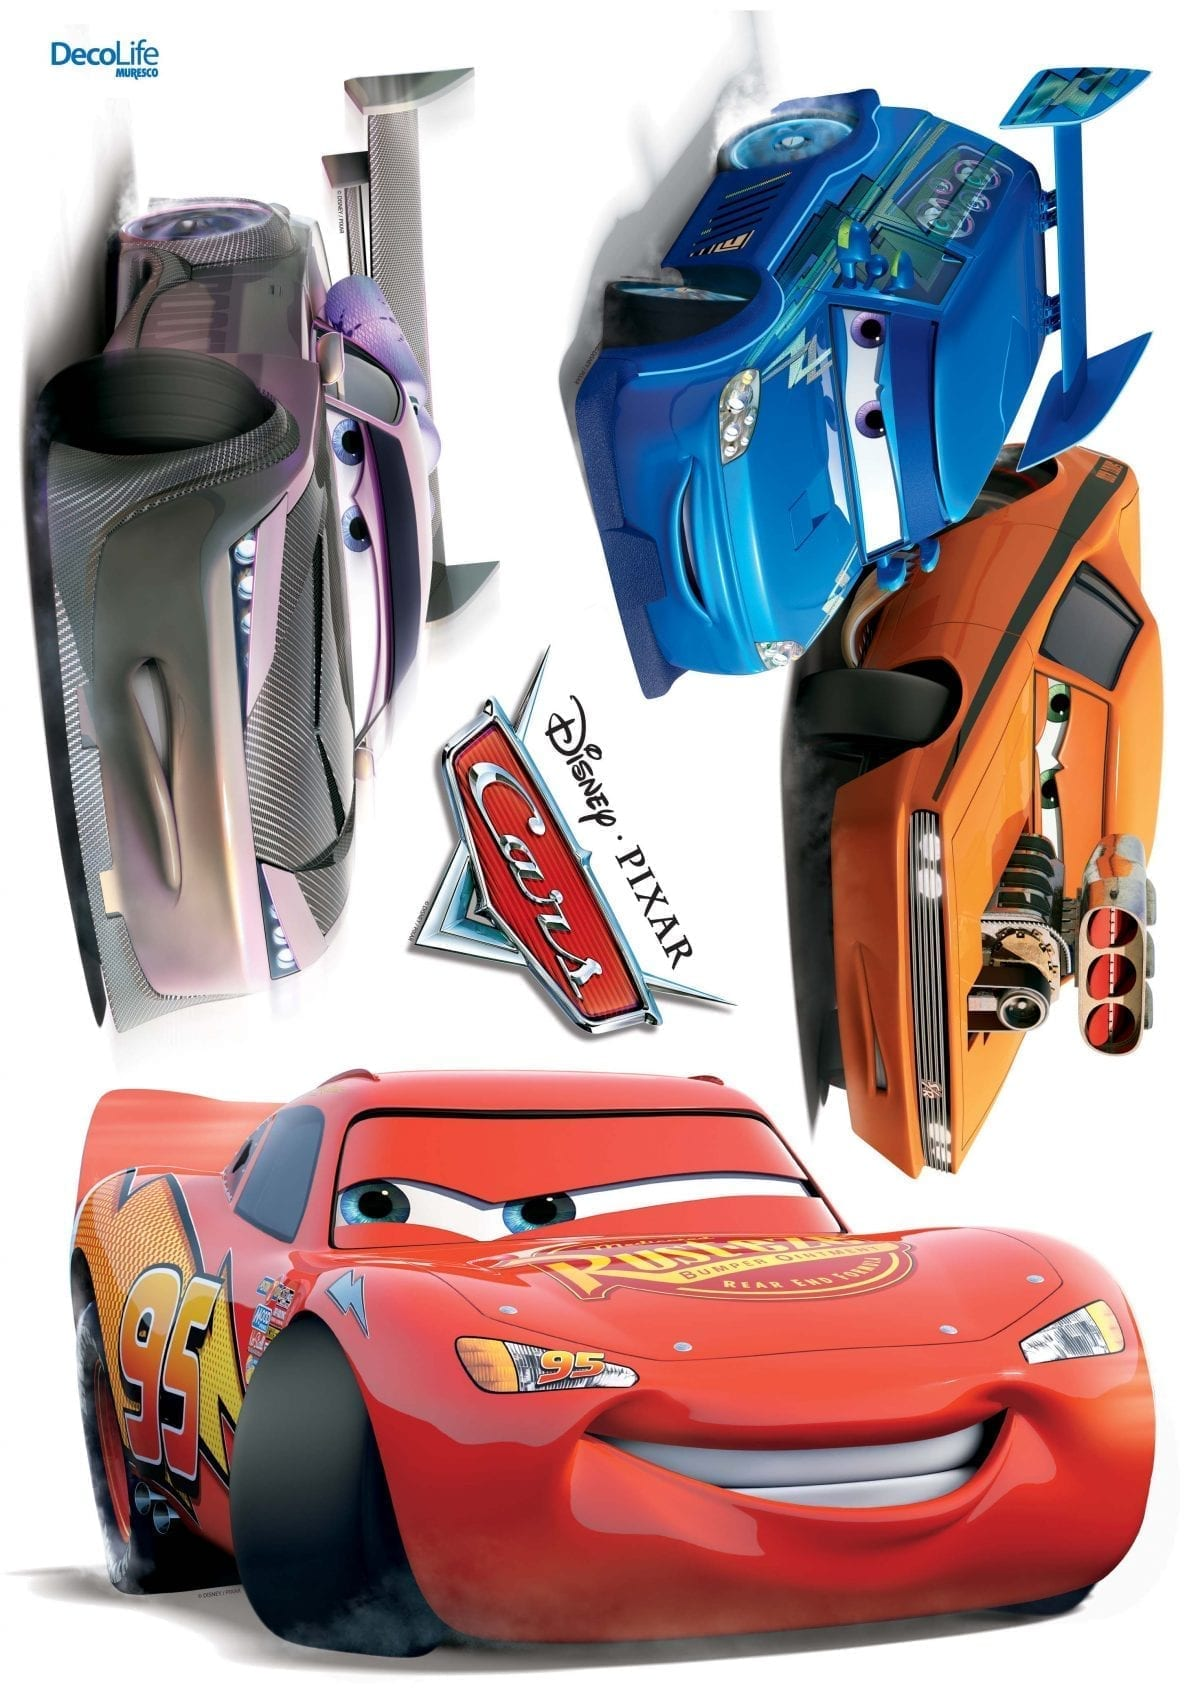 Wallsticker Cars DISNEY 1521-1 Decolife Muresco